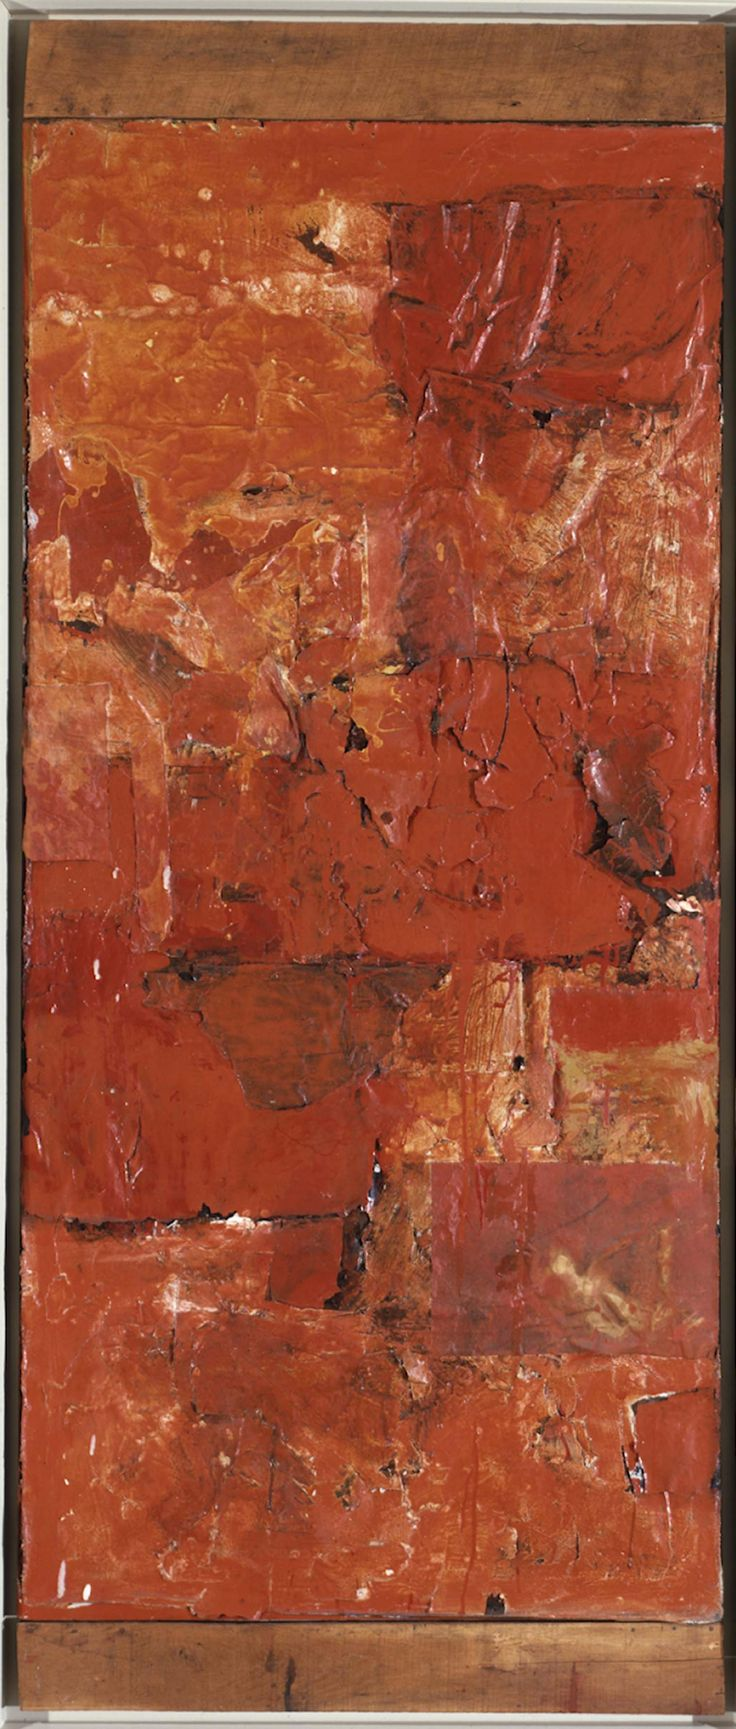 Untitled (Red Painting) | Robert Rauschenberg Foundation